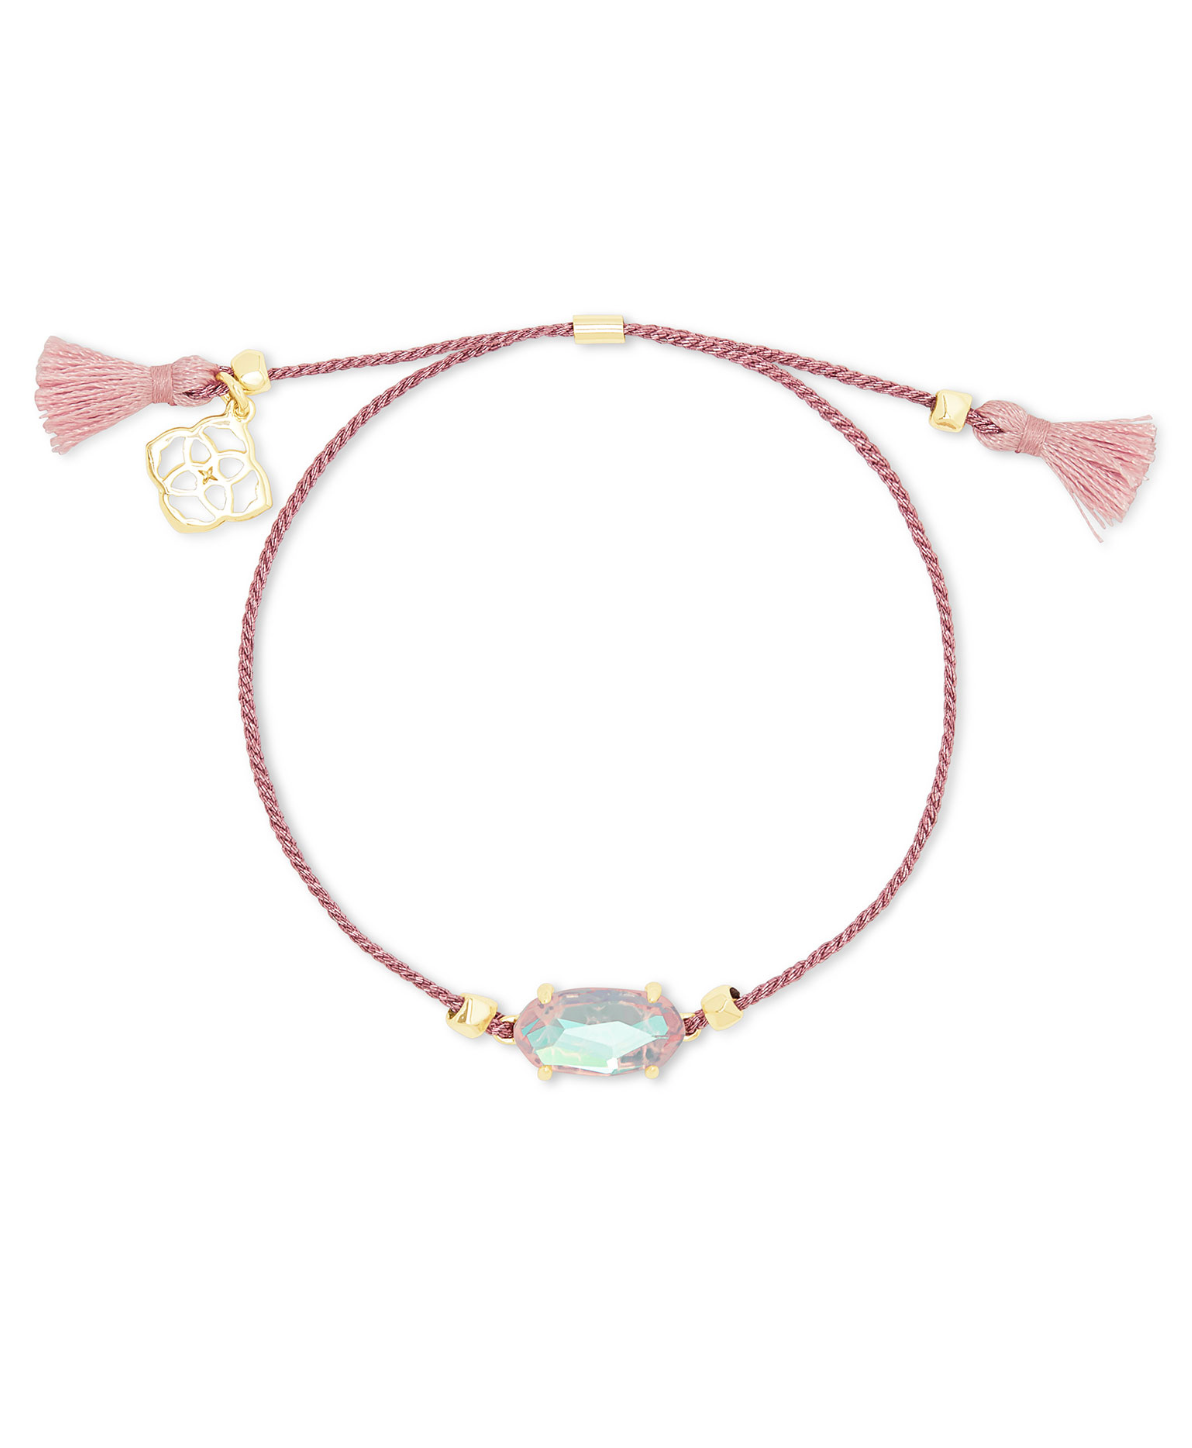 Everlyne Friendship Bracelet in Blush Dichroic | Breast Cancer Awareness Collection